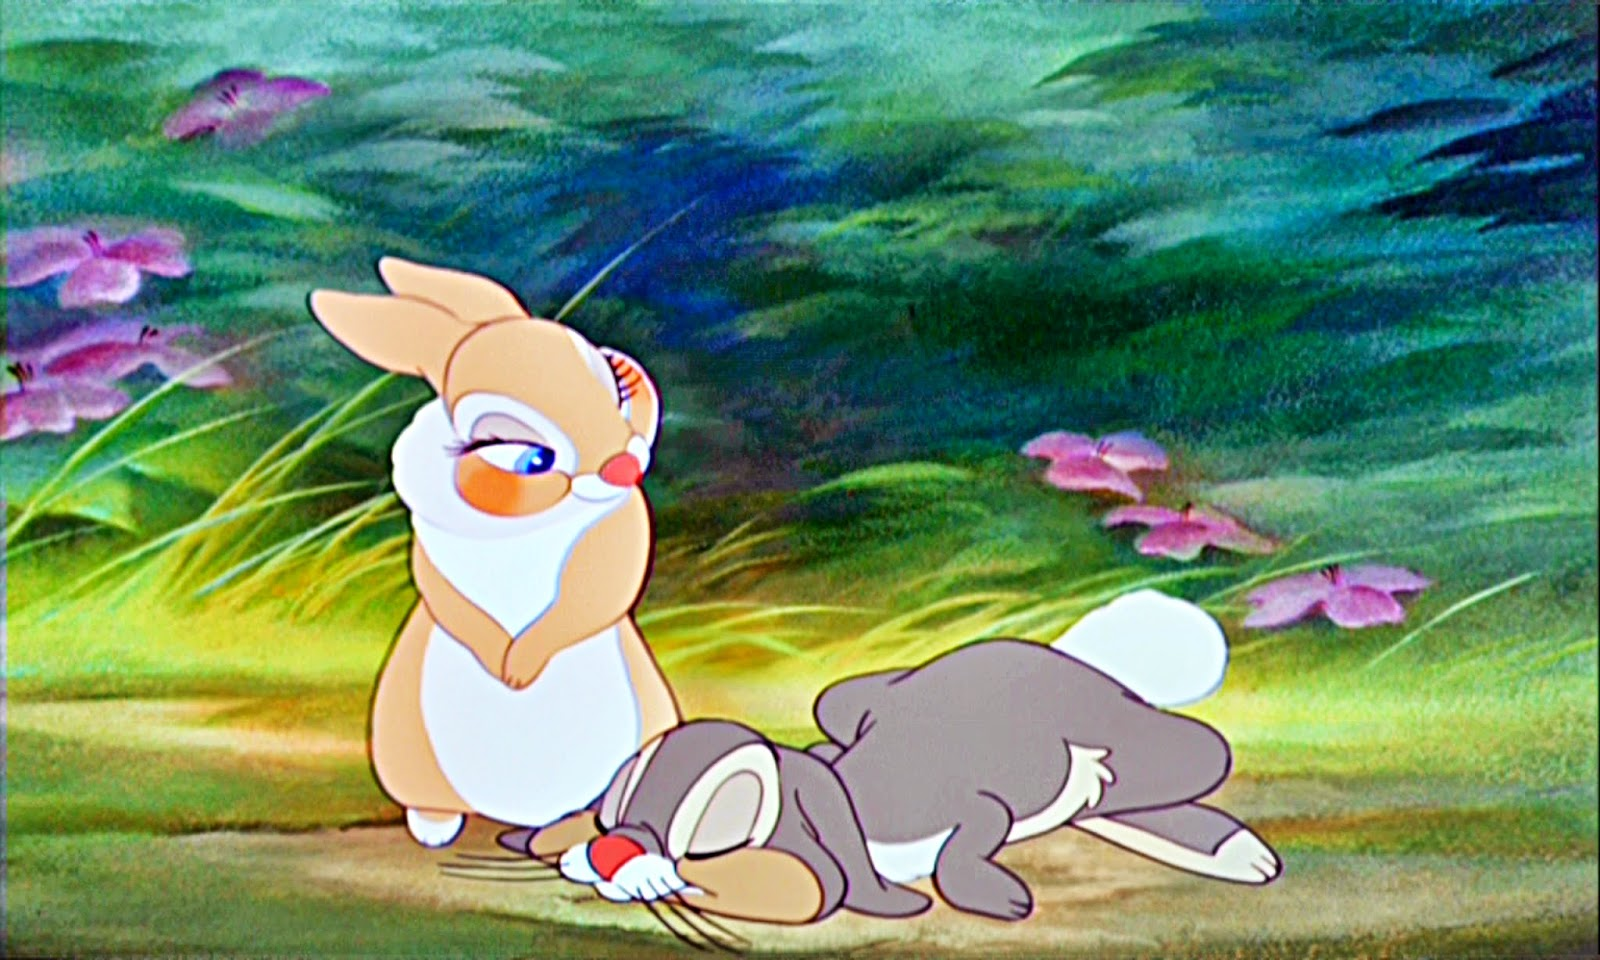 thumper and miss bunny wallpaper - photo #8